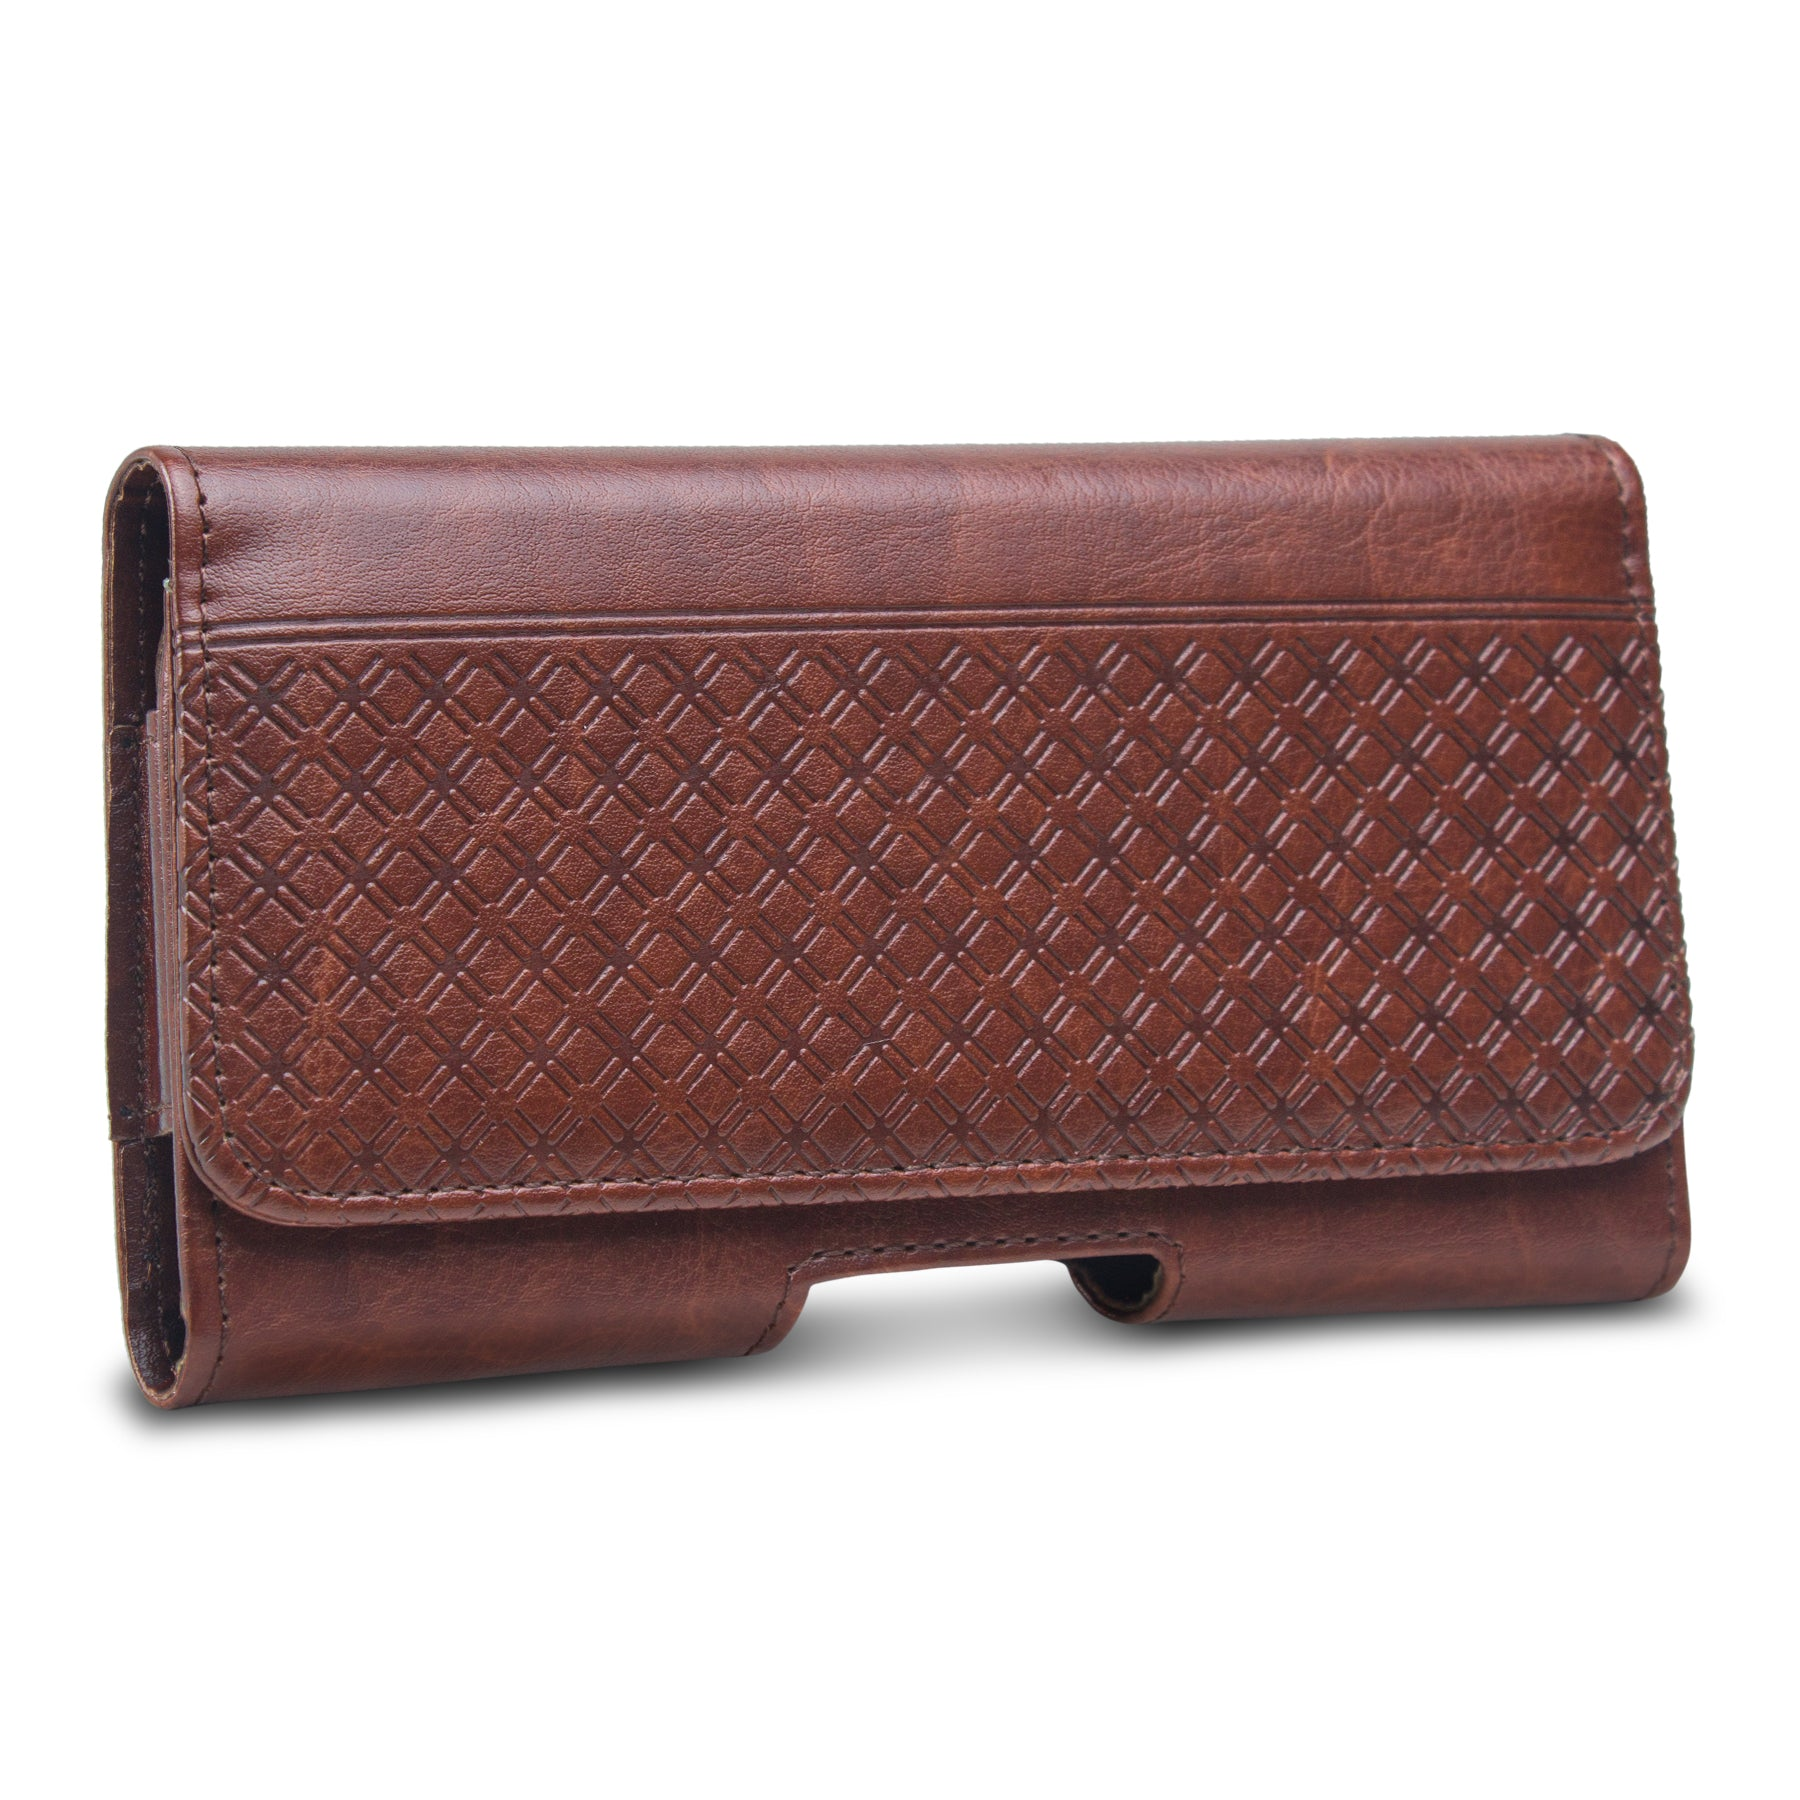 Phone Sleeve Pouch with Magnetic Lock for 5.2 Inch to 6.2 Inch Phones (Walnut Brown)